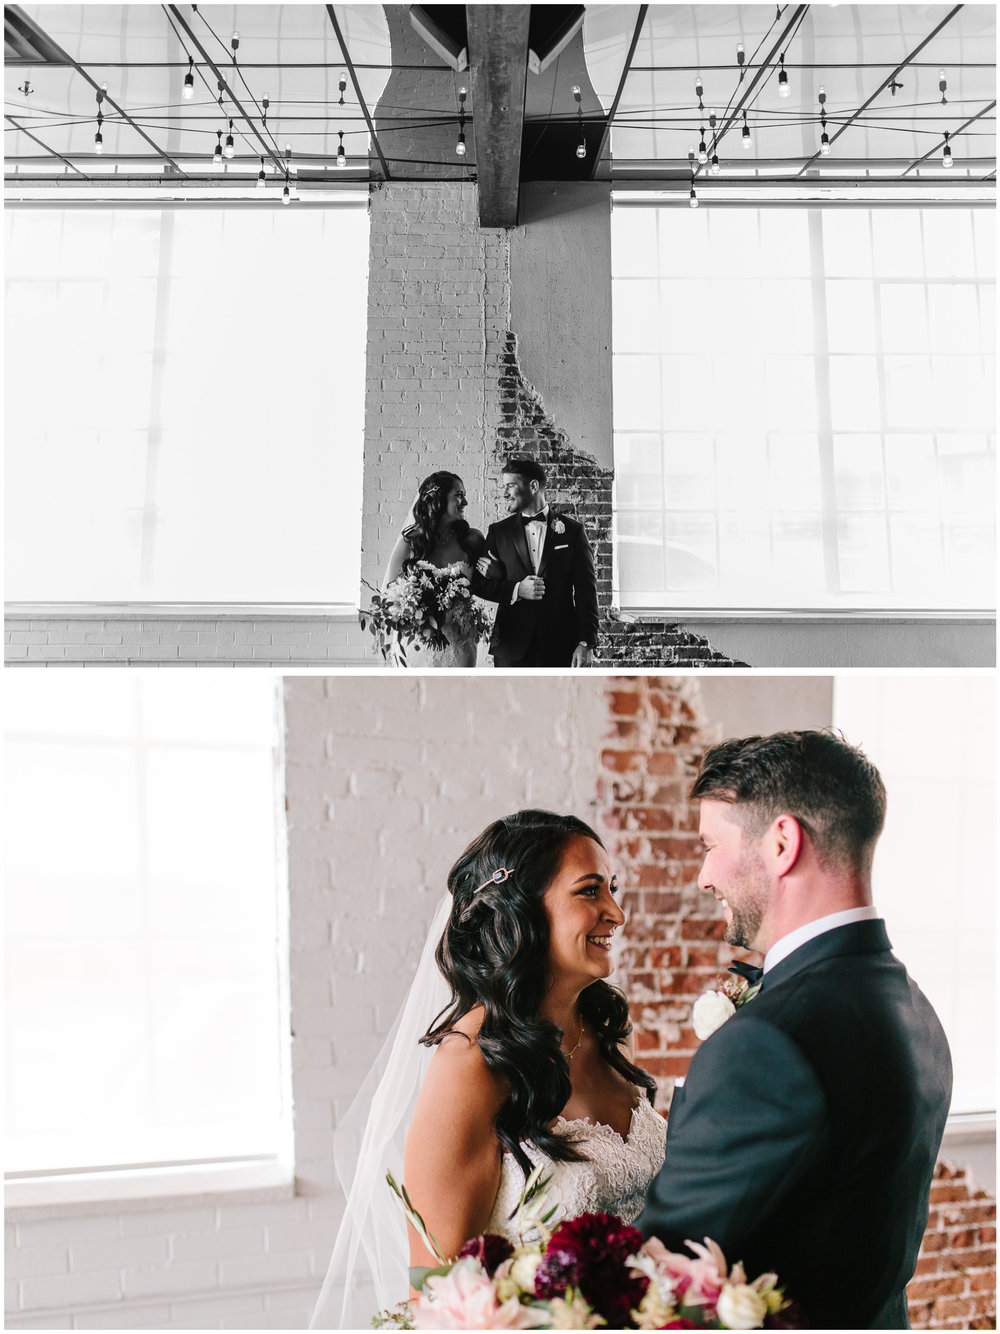 moss_denver_wedding_24.jpg